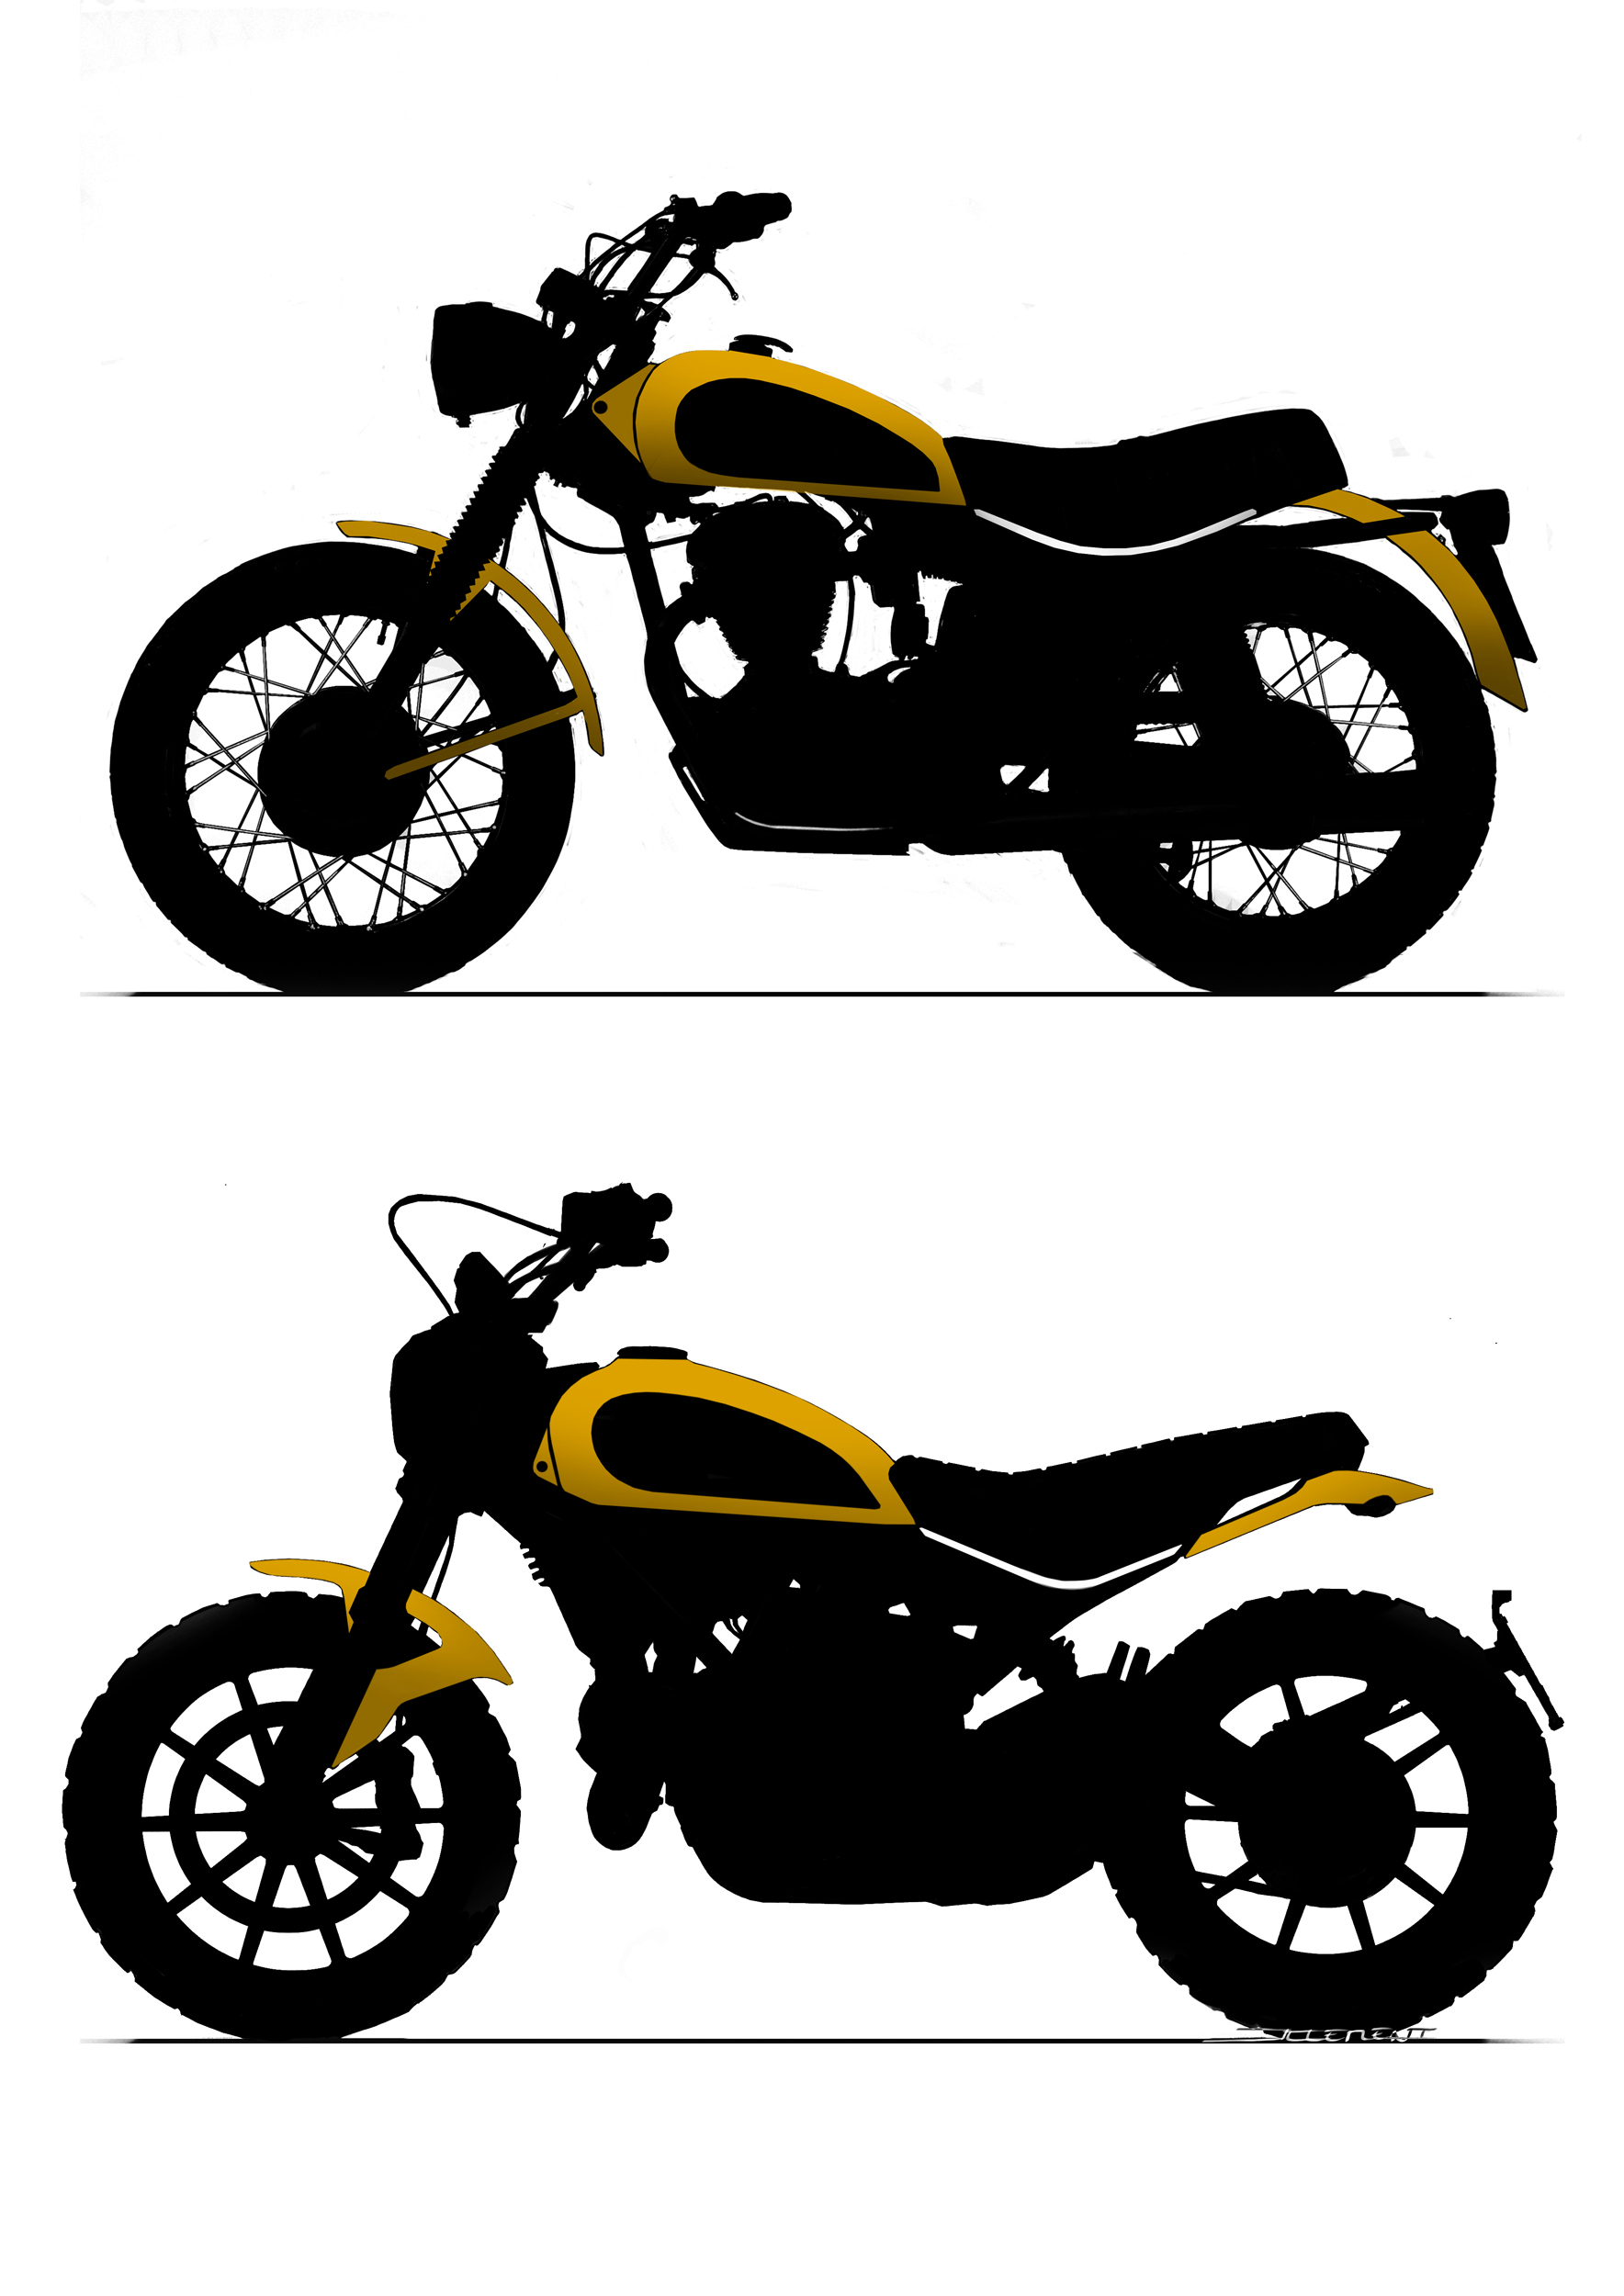 Scrambler Sketches Iconic Elements